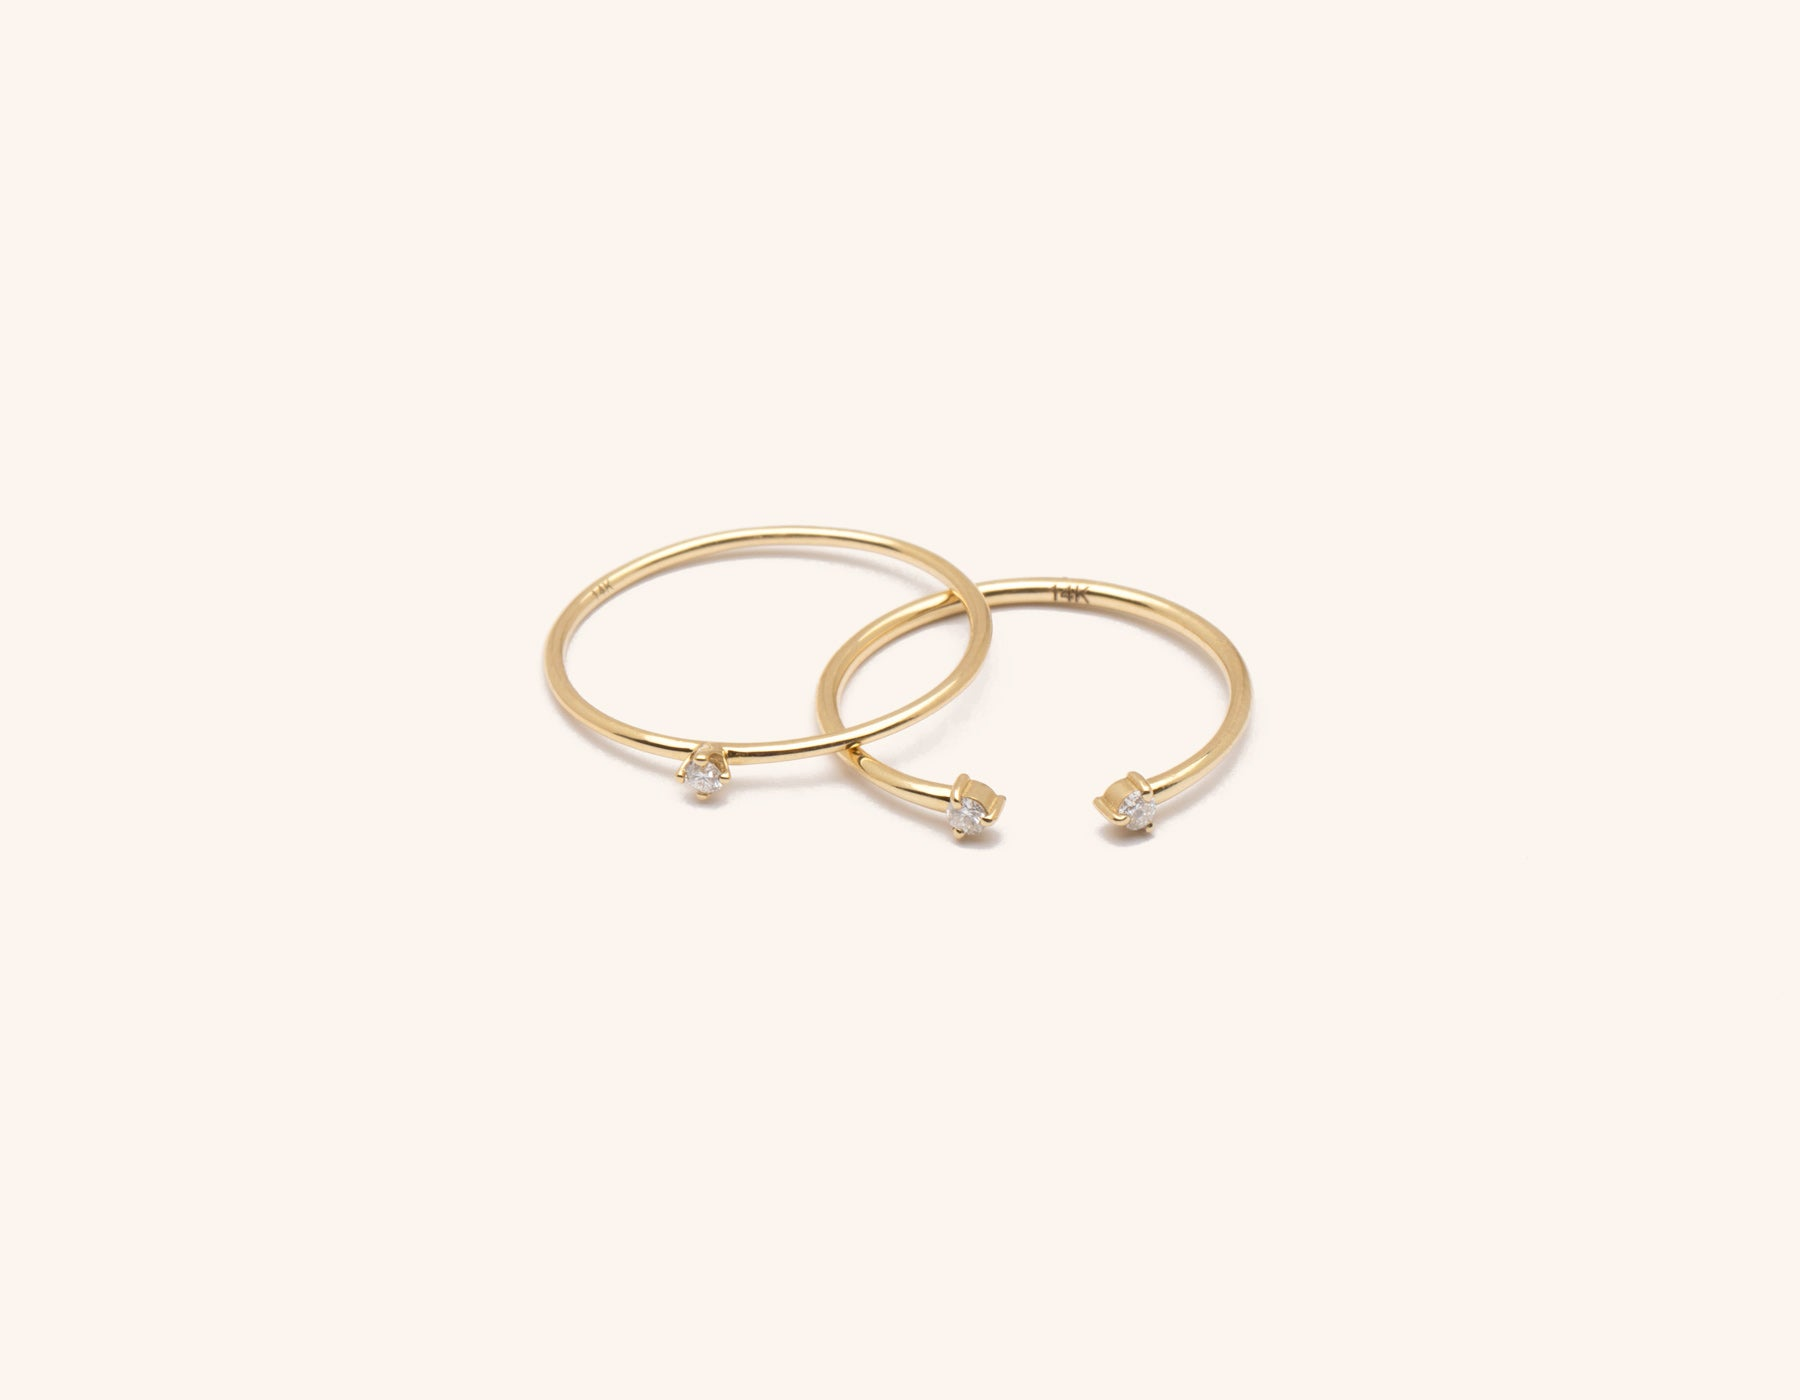 Solid 14K gold Constellation Stack diamond ring bundle by Vrai & Oro minimalist classic sustainable jewelry, 14K Yellow Gold